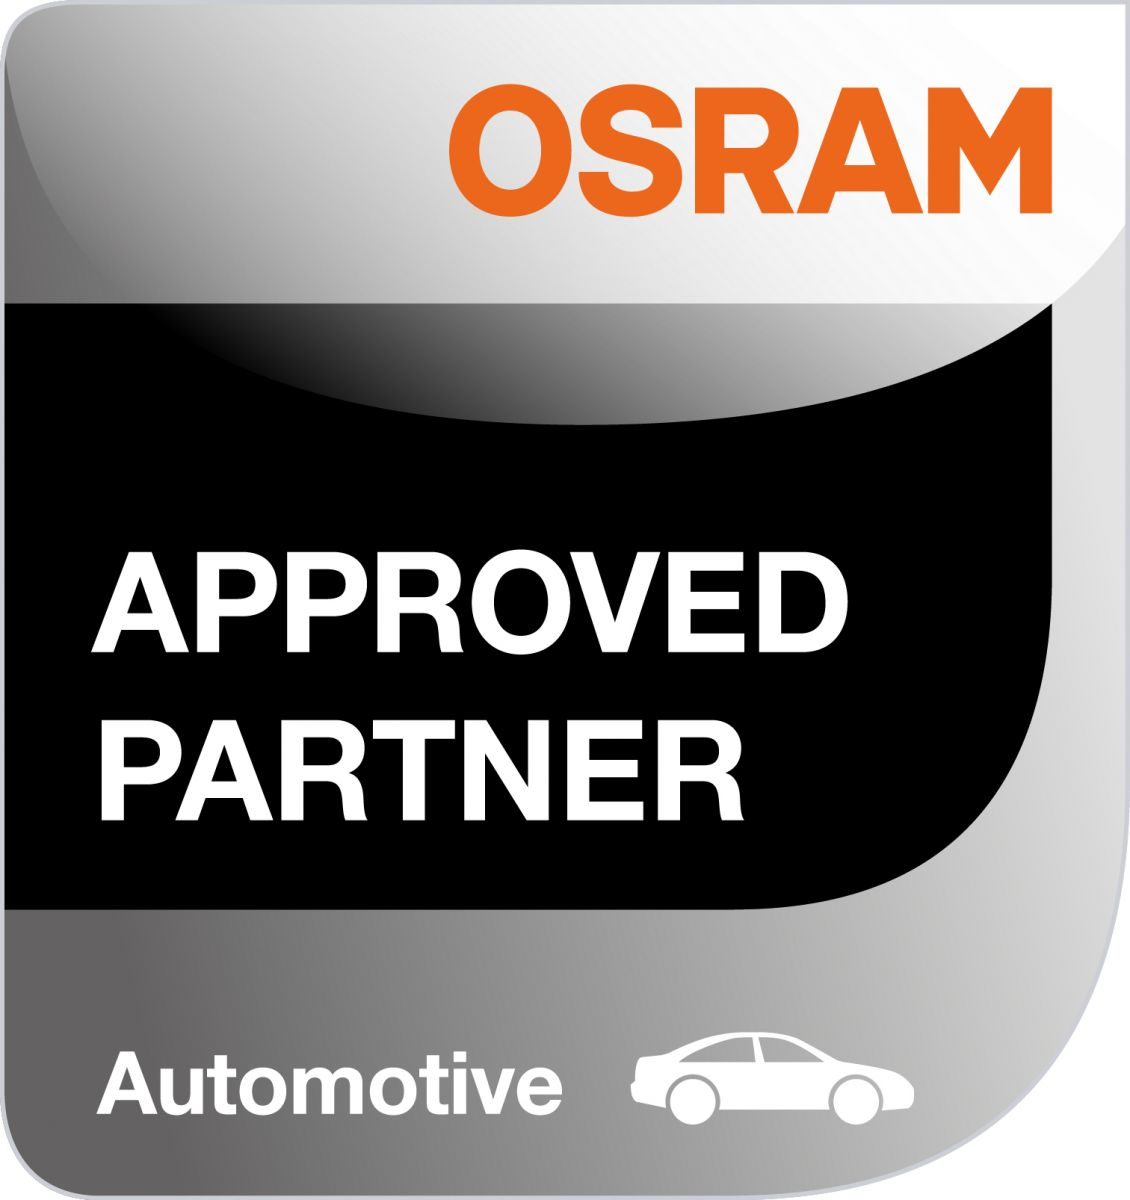 OSRAM UK - Approved Partners e3372dfc0d7db